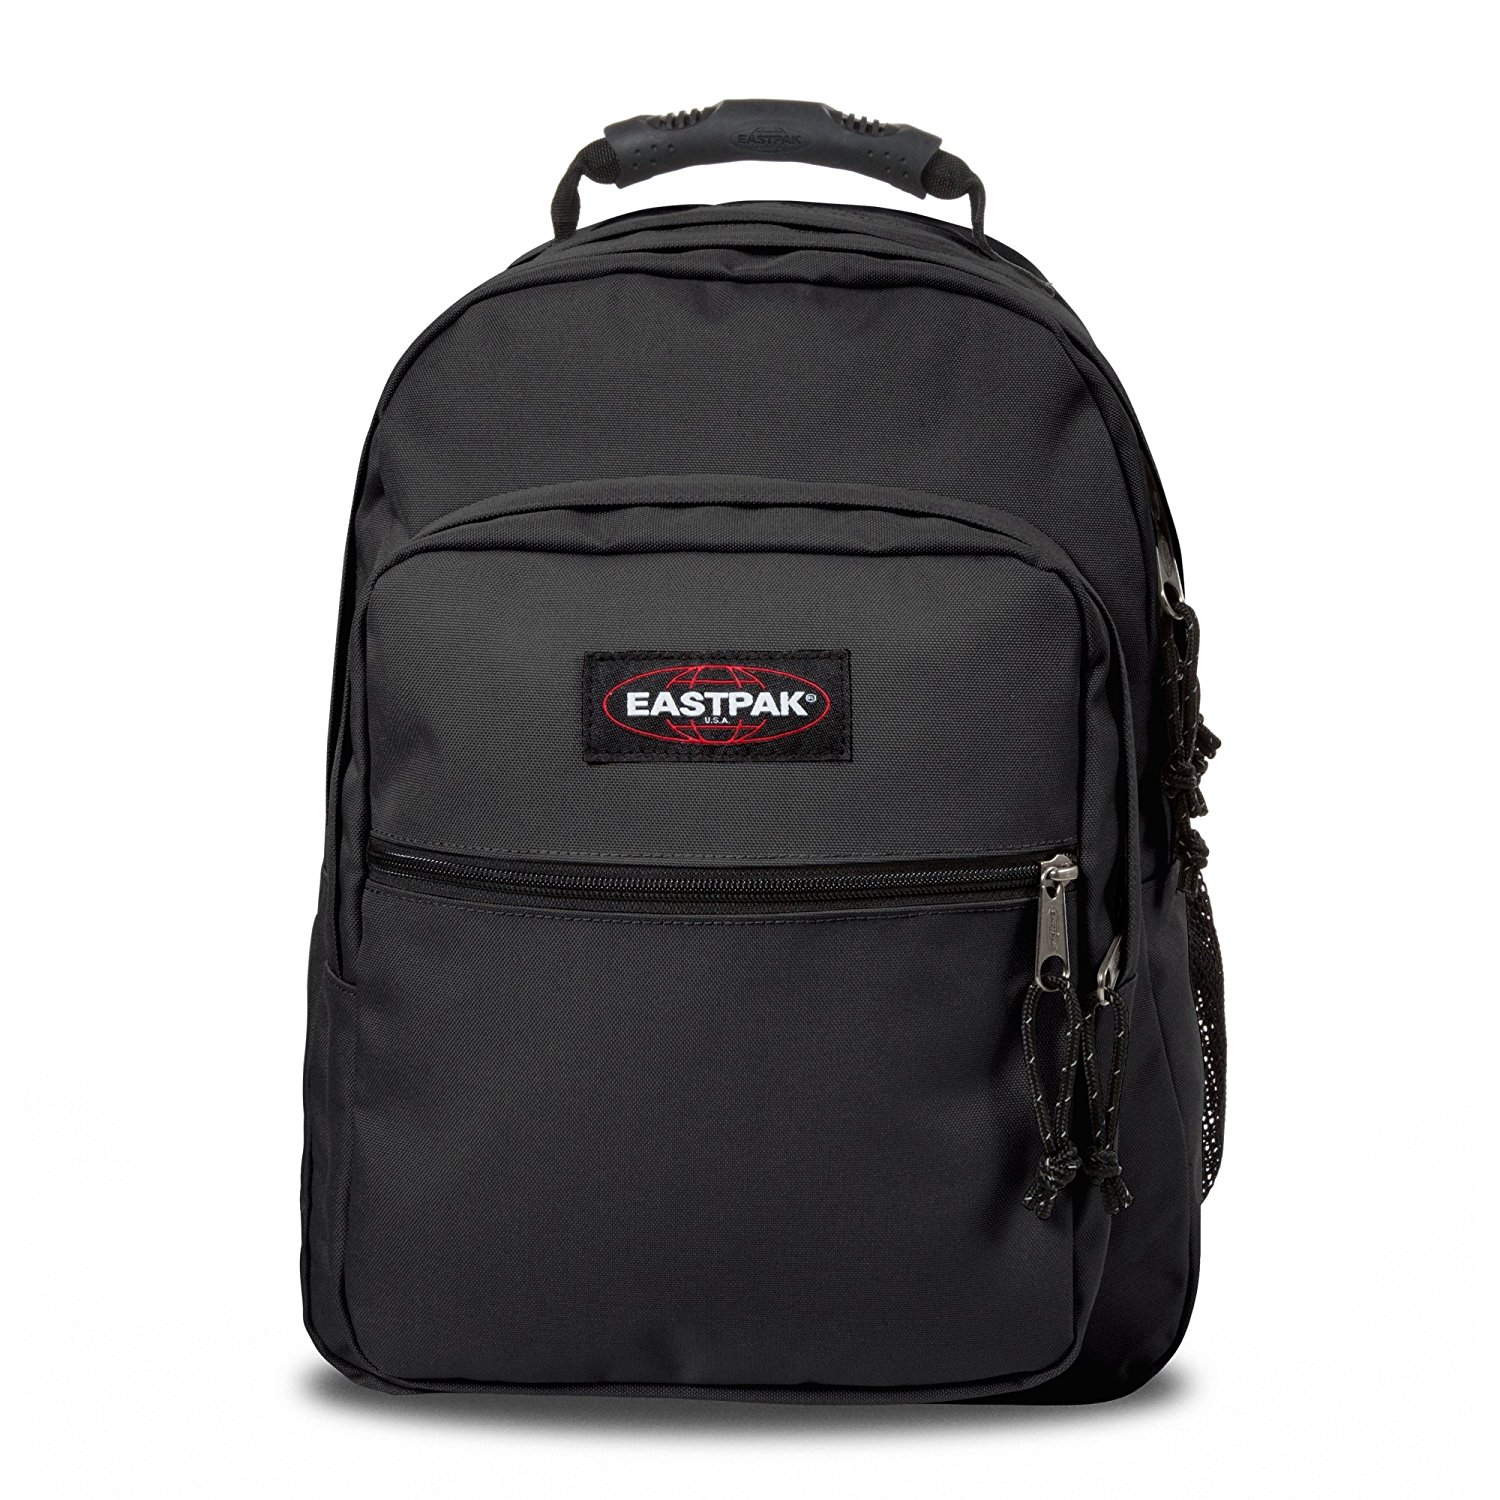 Cheap Eastpak Trolley Find Eastpak Trolley Deals On Line At Alibaba Com